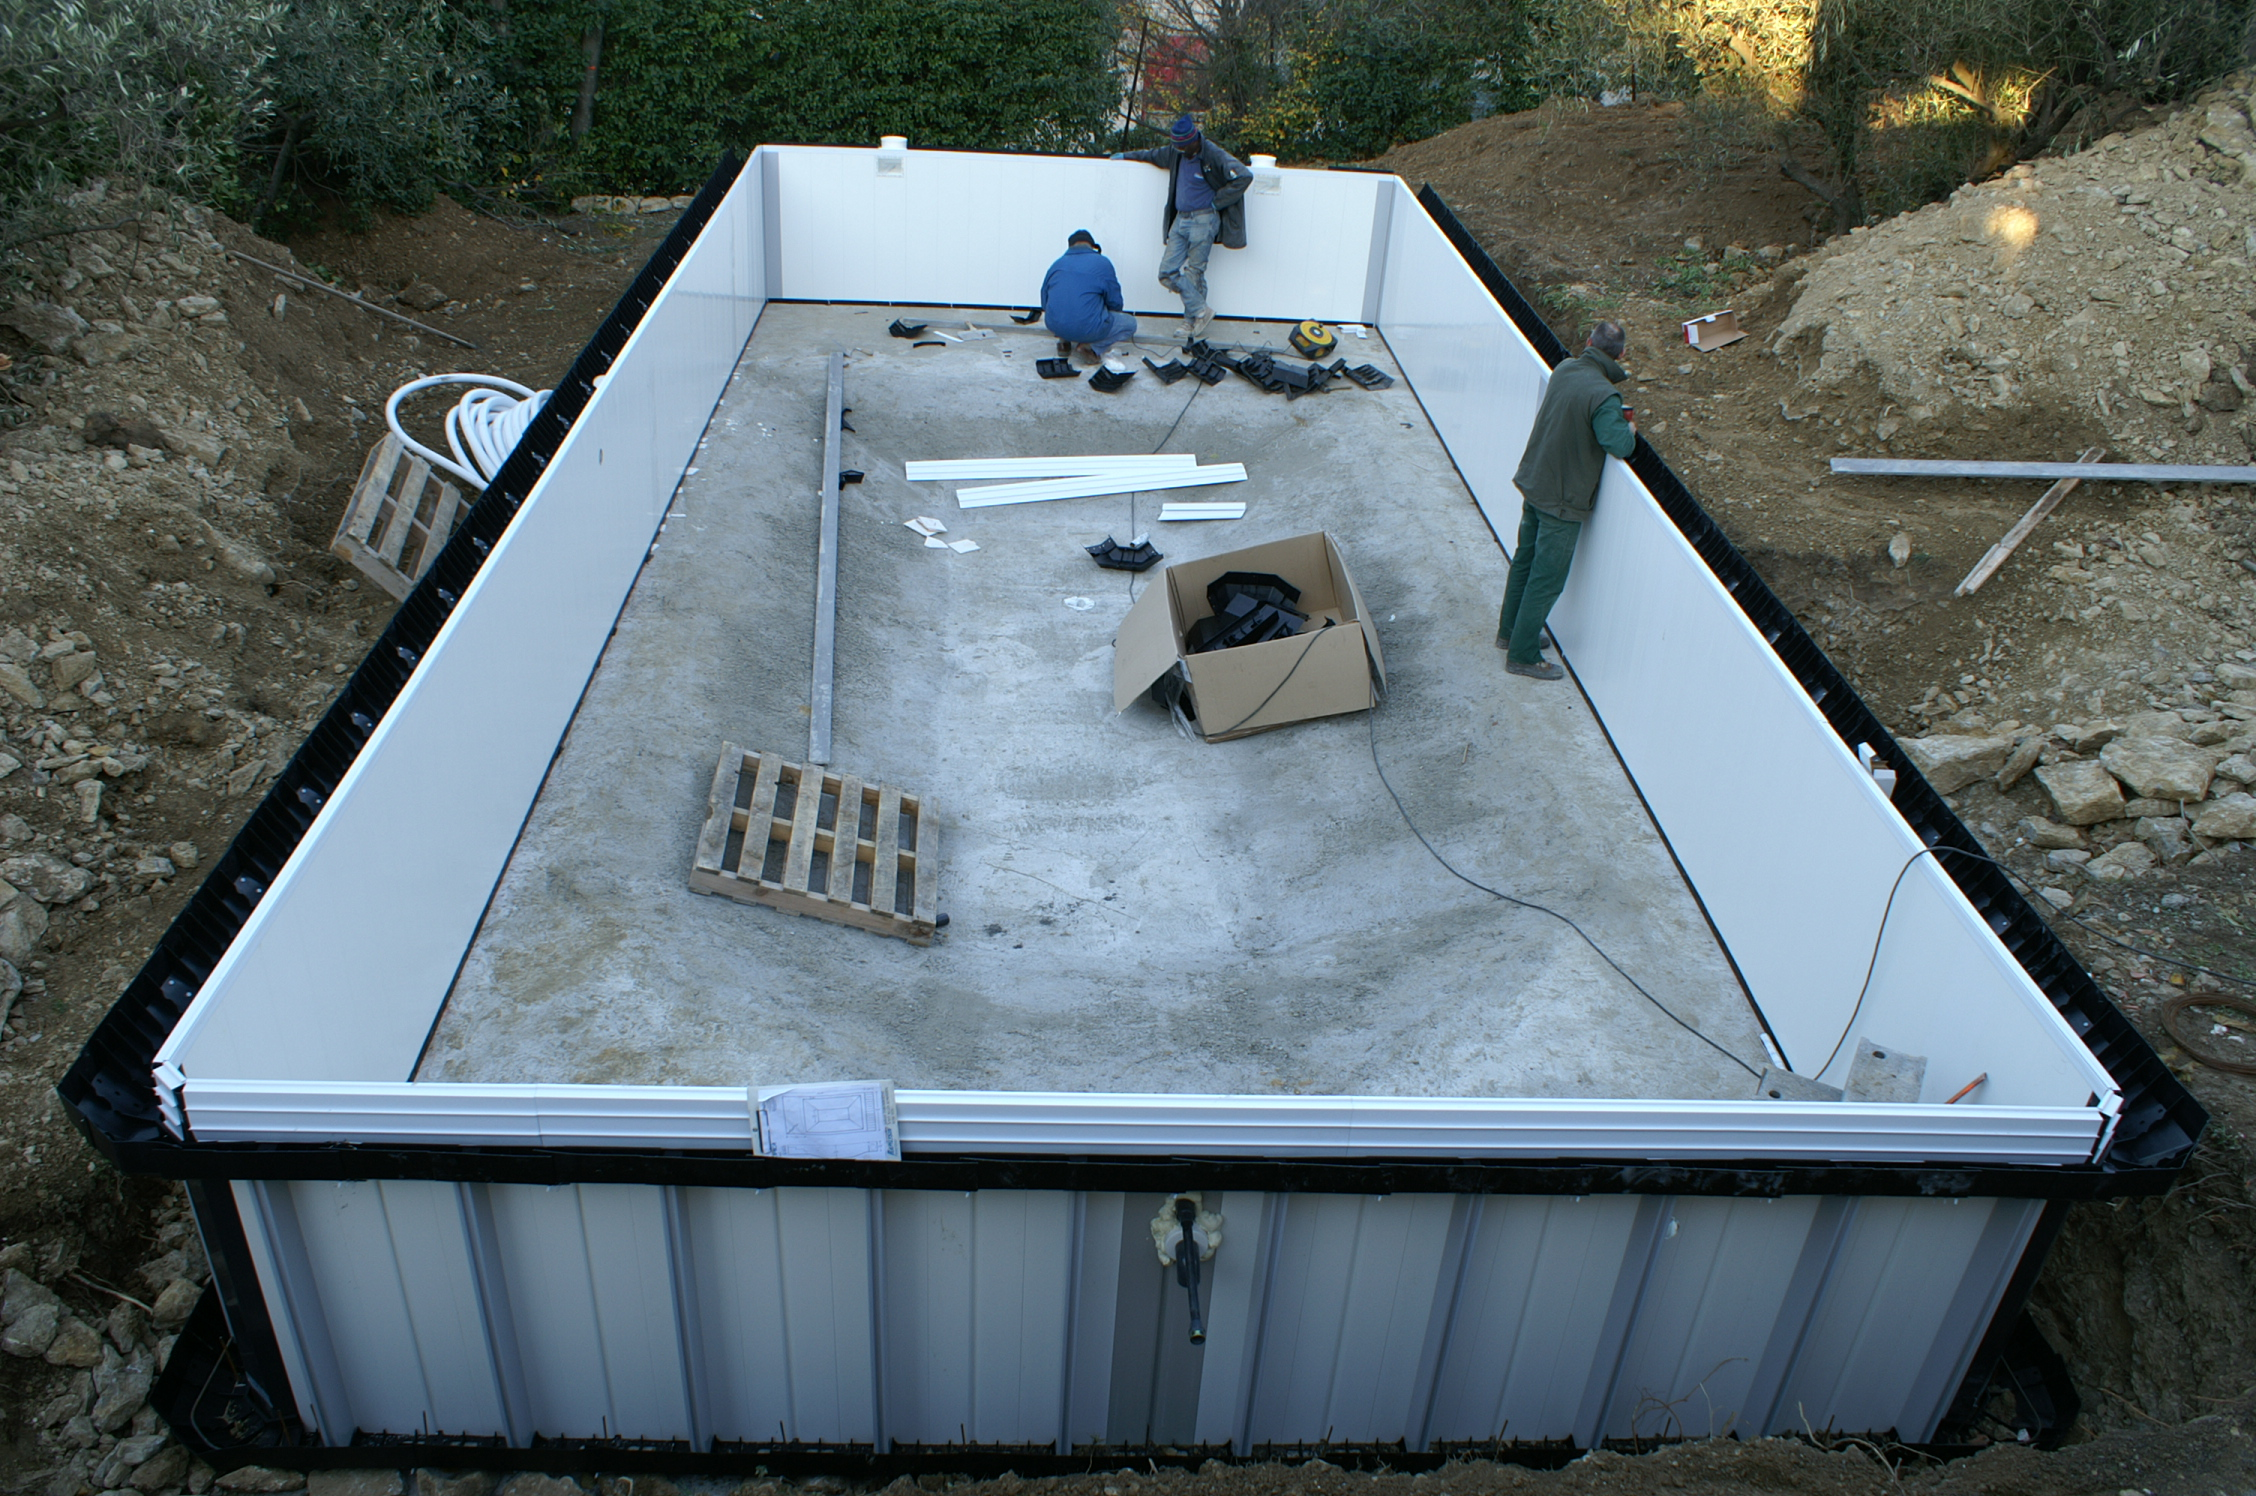 Construction piscines nimes gepad piscines et spa 30000 for Piscine en kit beton